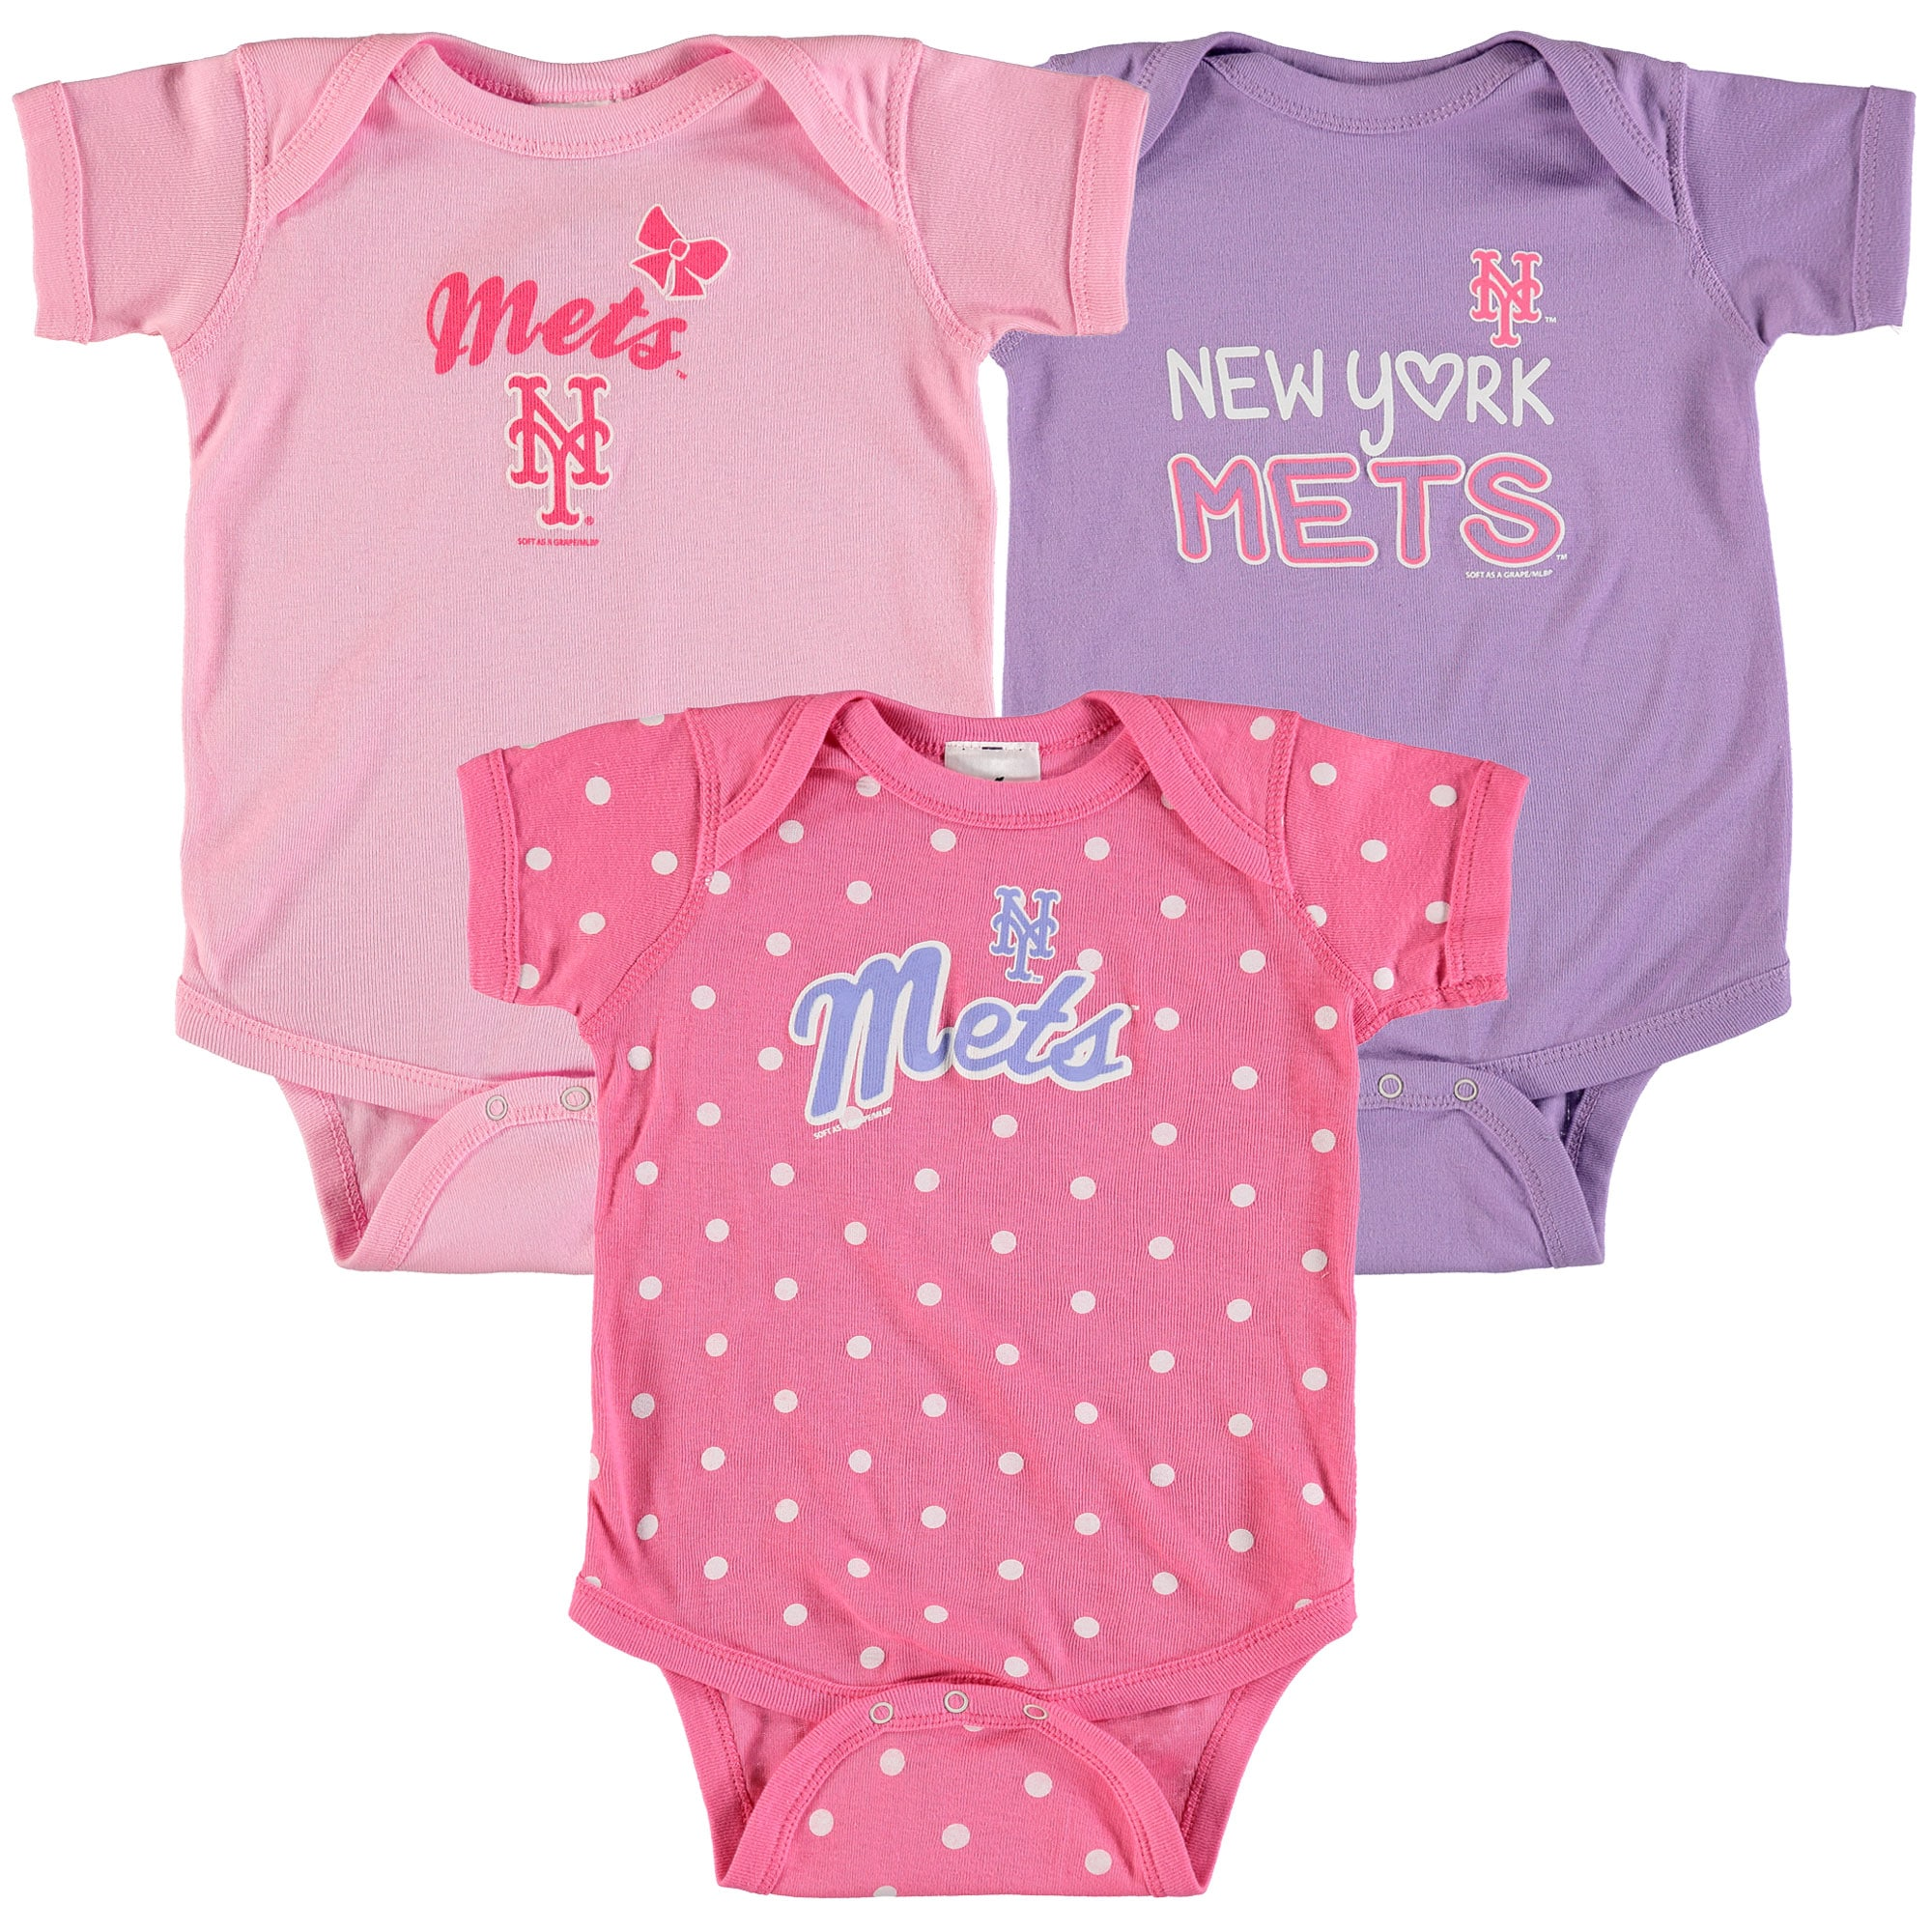 New York Mets Soft as a Grape Girls Infant 3-Pack Rookie Bodysuit Set - Pink/Purple